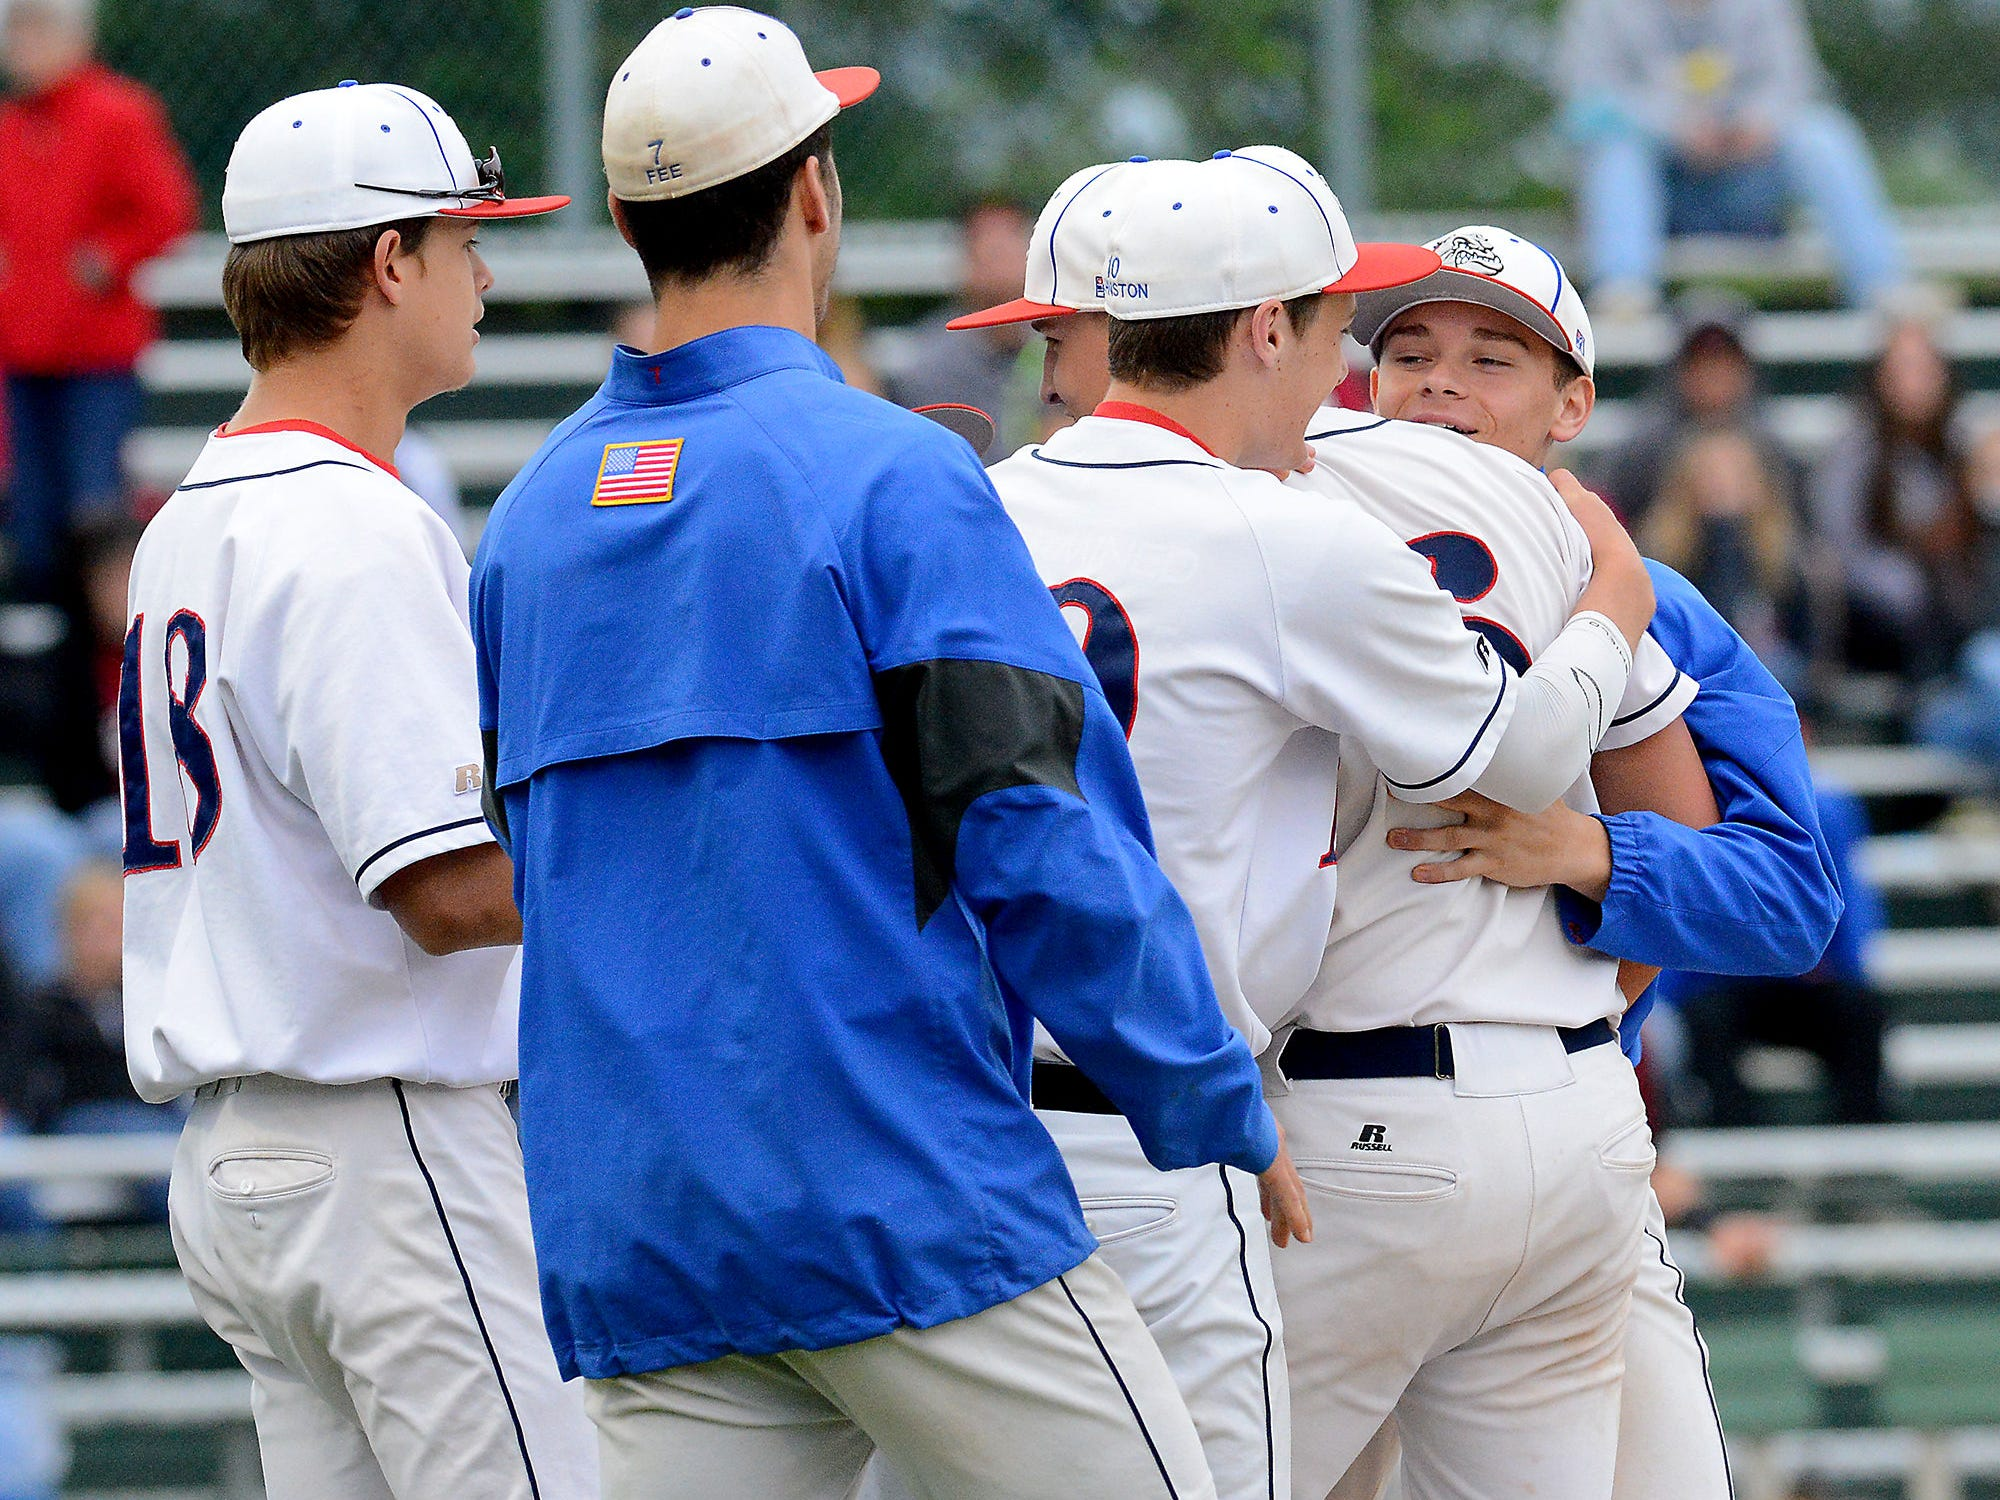 Teammates hug and surround Mason pitcher Harrison Kinney (6) after he struck out Portland's Austin Allison to close out the 3-2 victory in the Diamond Classic matchup Wednesdayat Lansing's Kircher Municipal Park. Allison quieted a Portland seventh-inning rally with the strikeout.